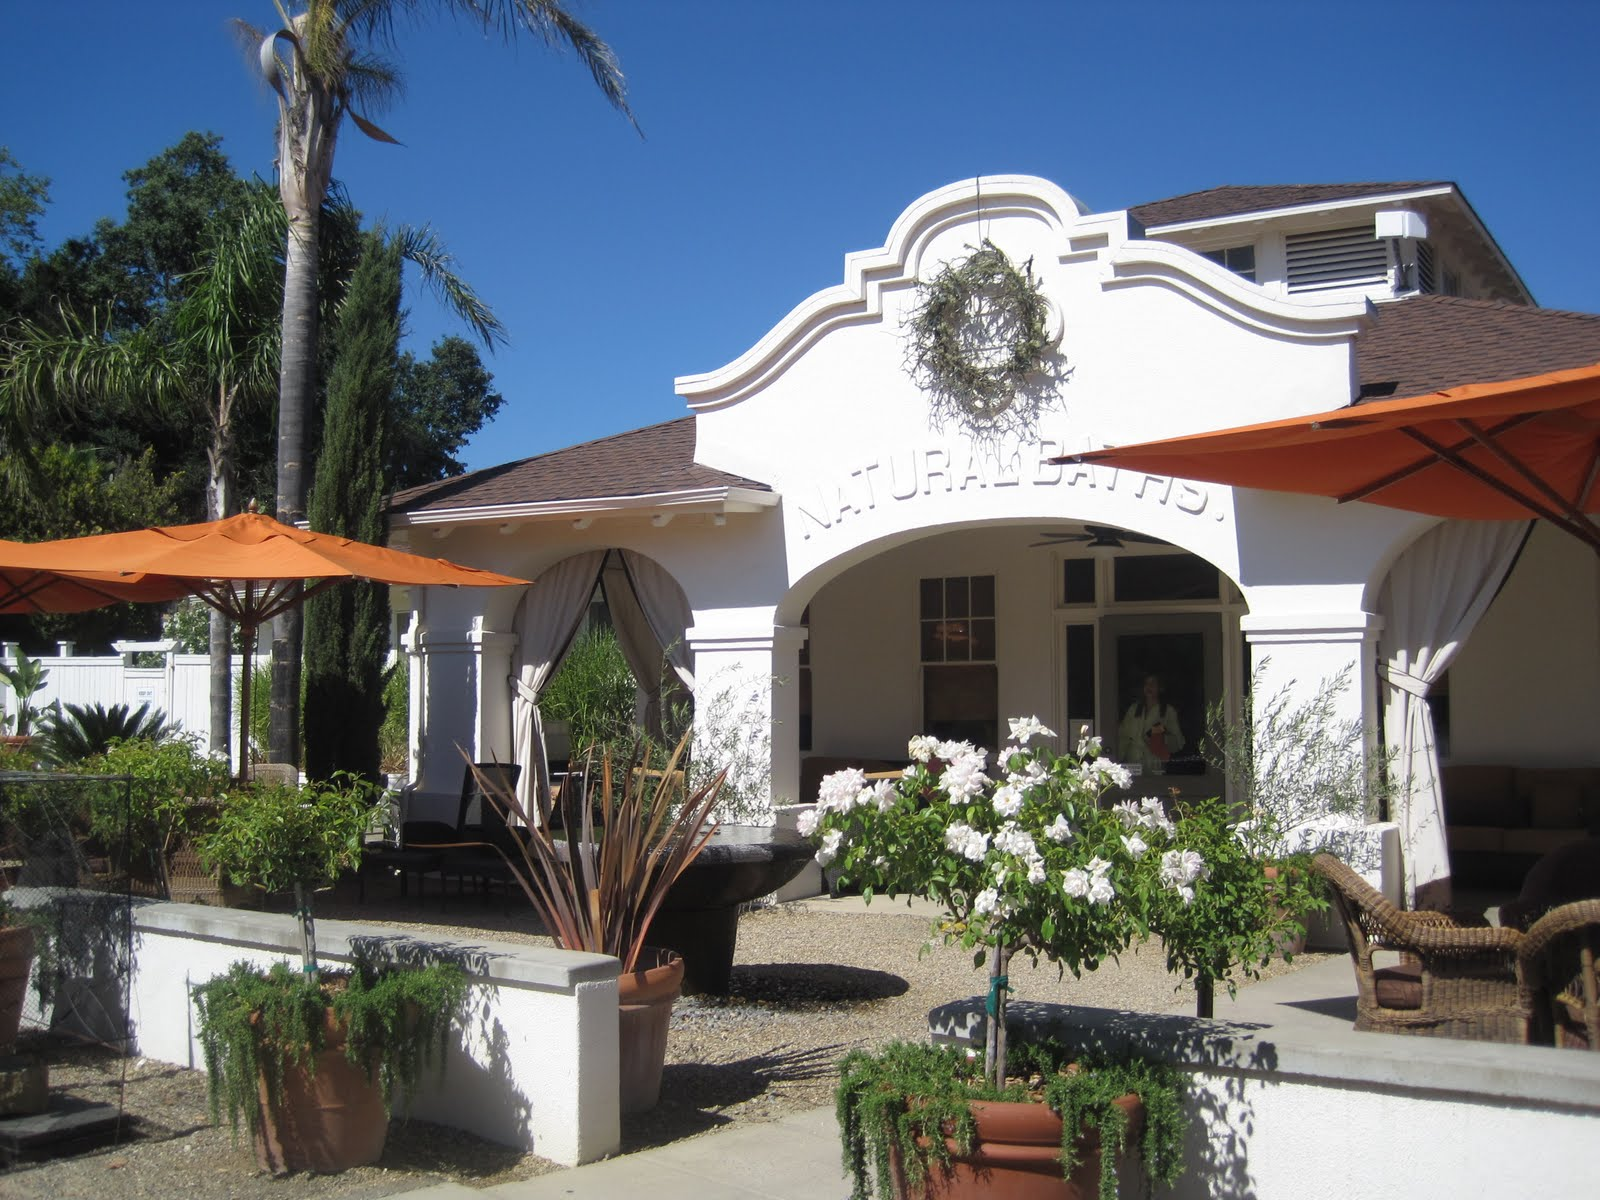 Indian Springs Spa Calistoga Reviews